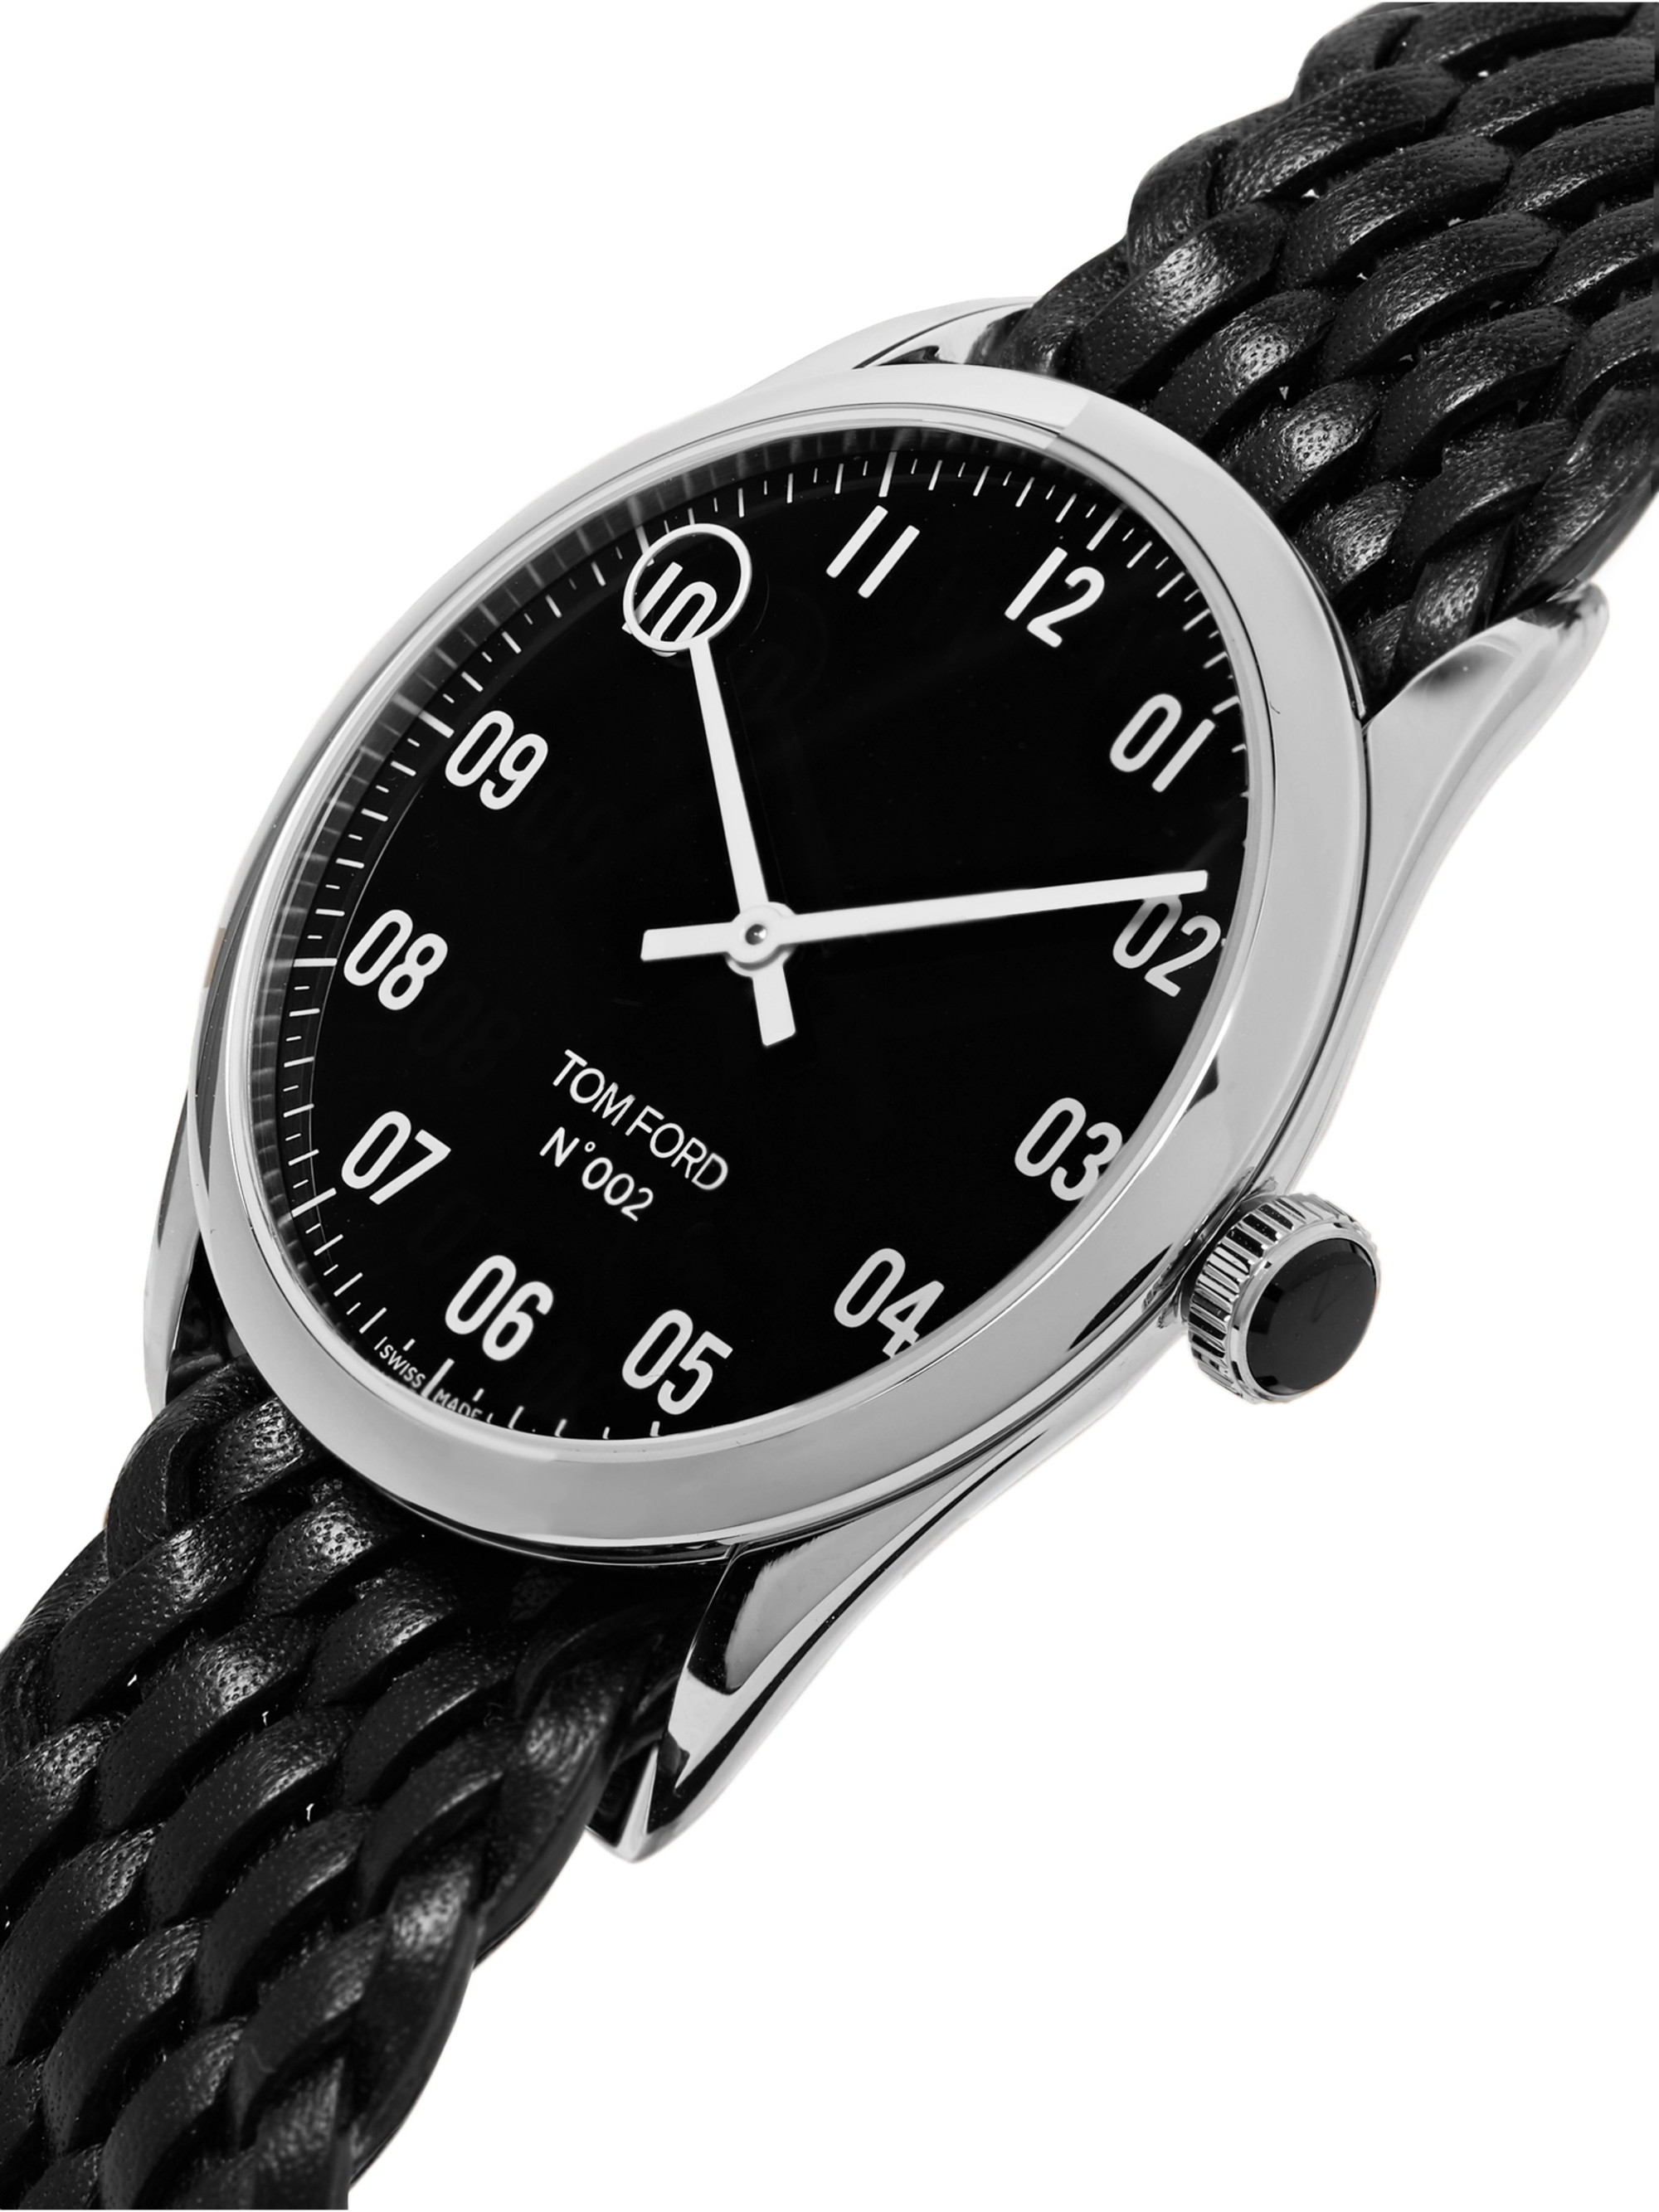 Tom Ford Timepieces 002 38mm Stainless Steel and Braided Leather Watch